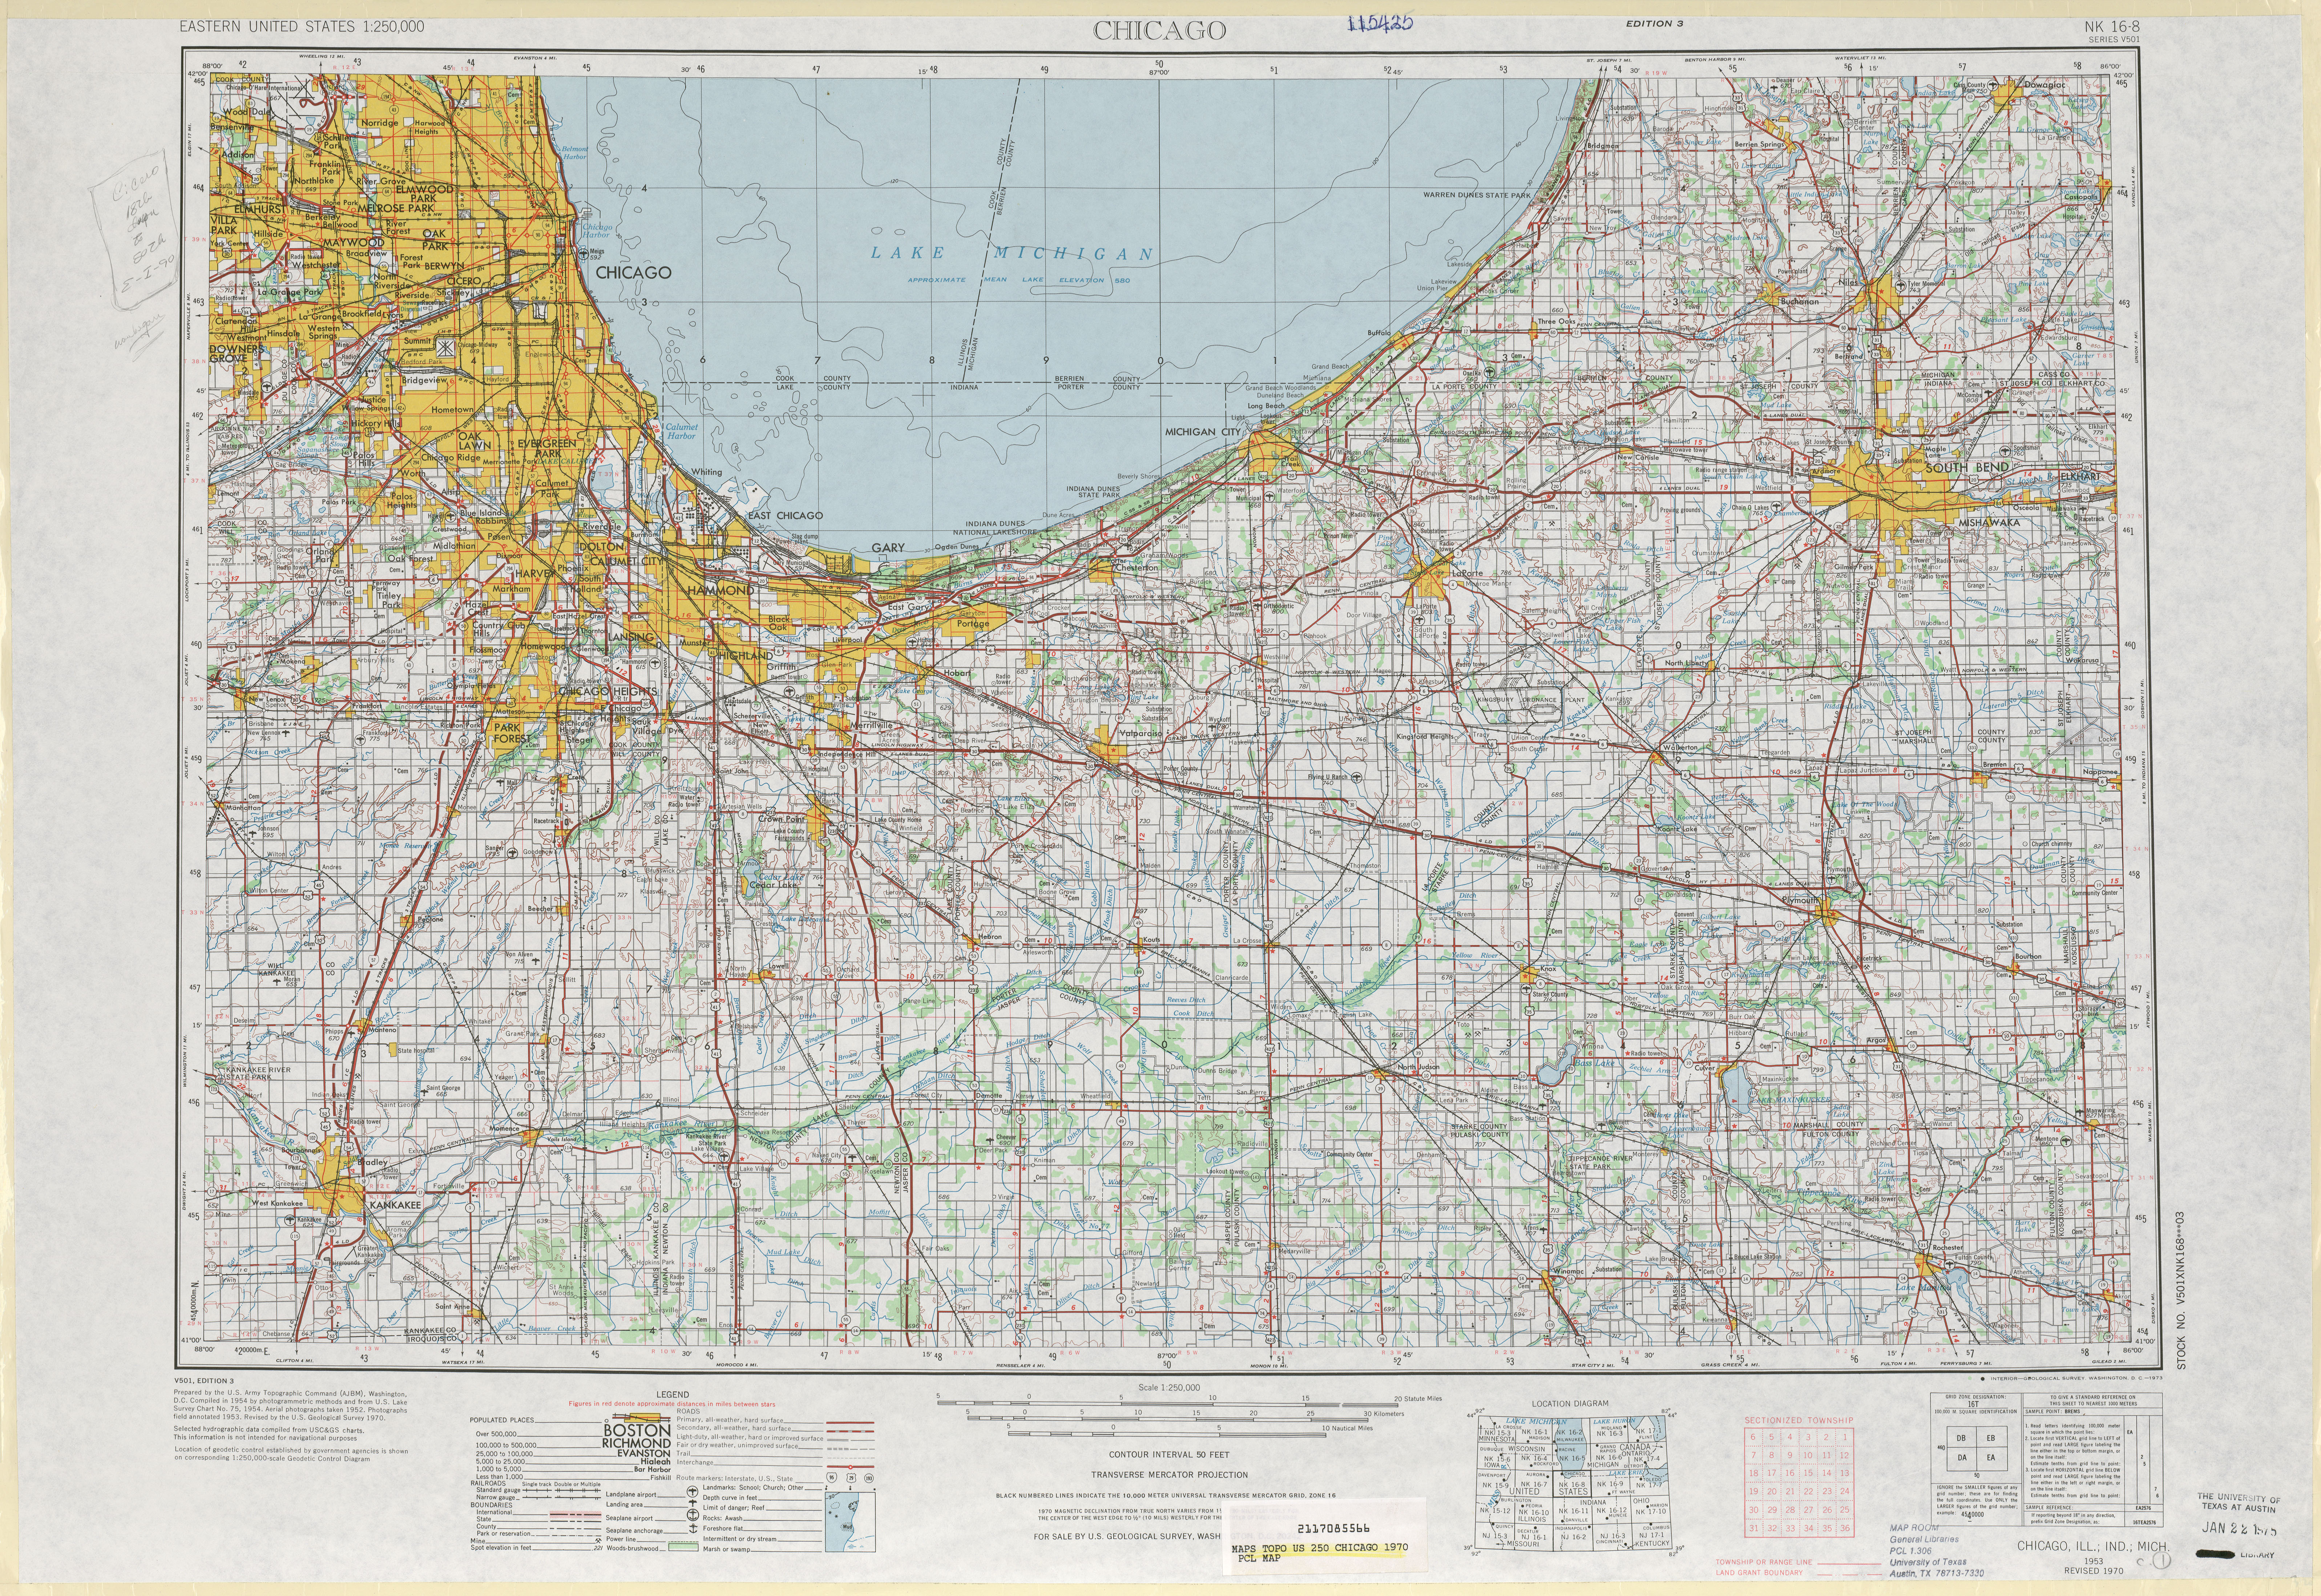 Chicago Topographic Map Sheet, United States 1970